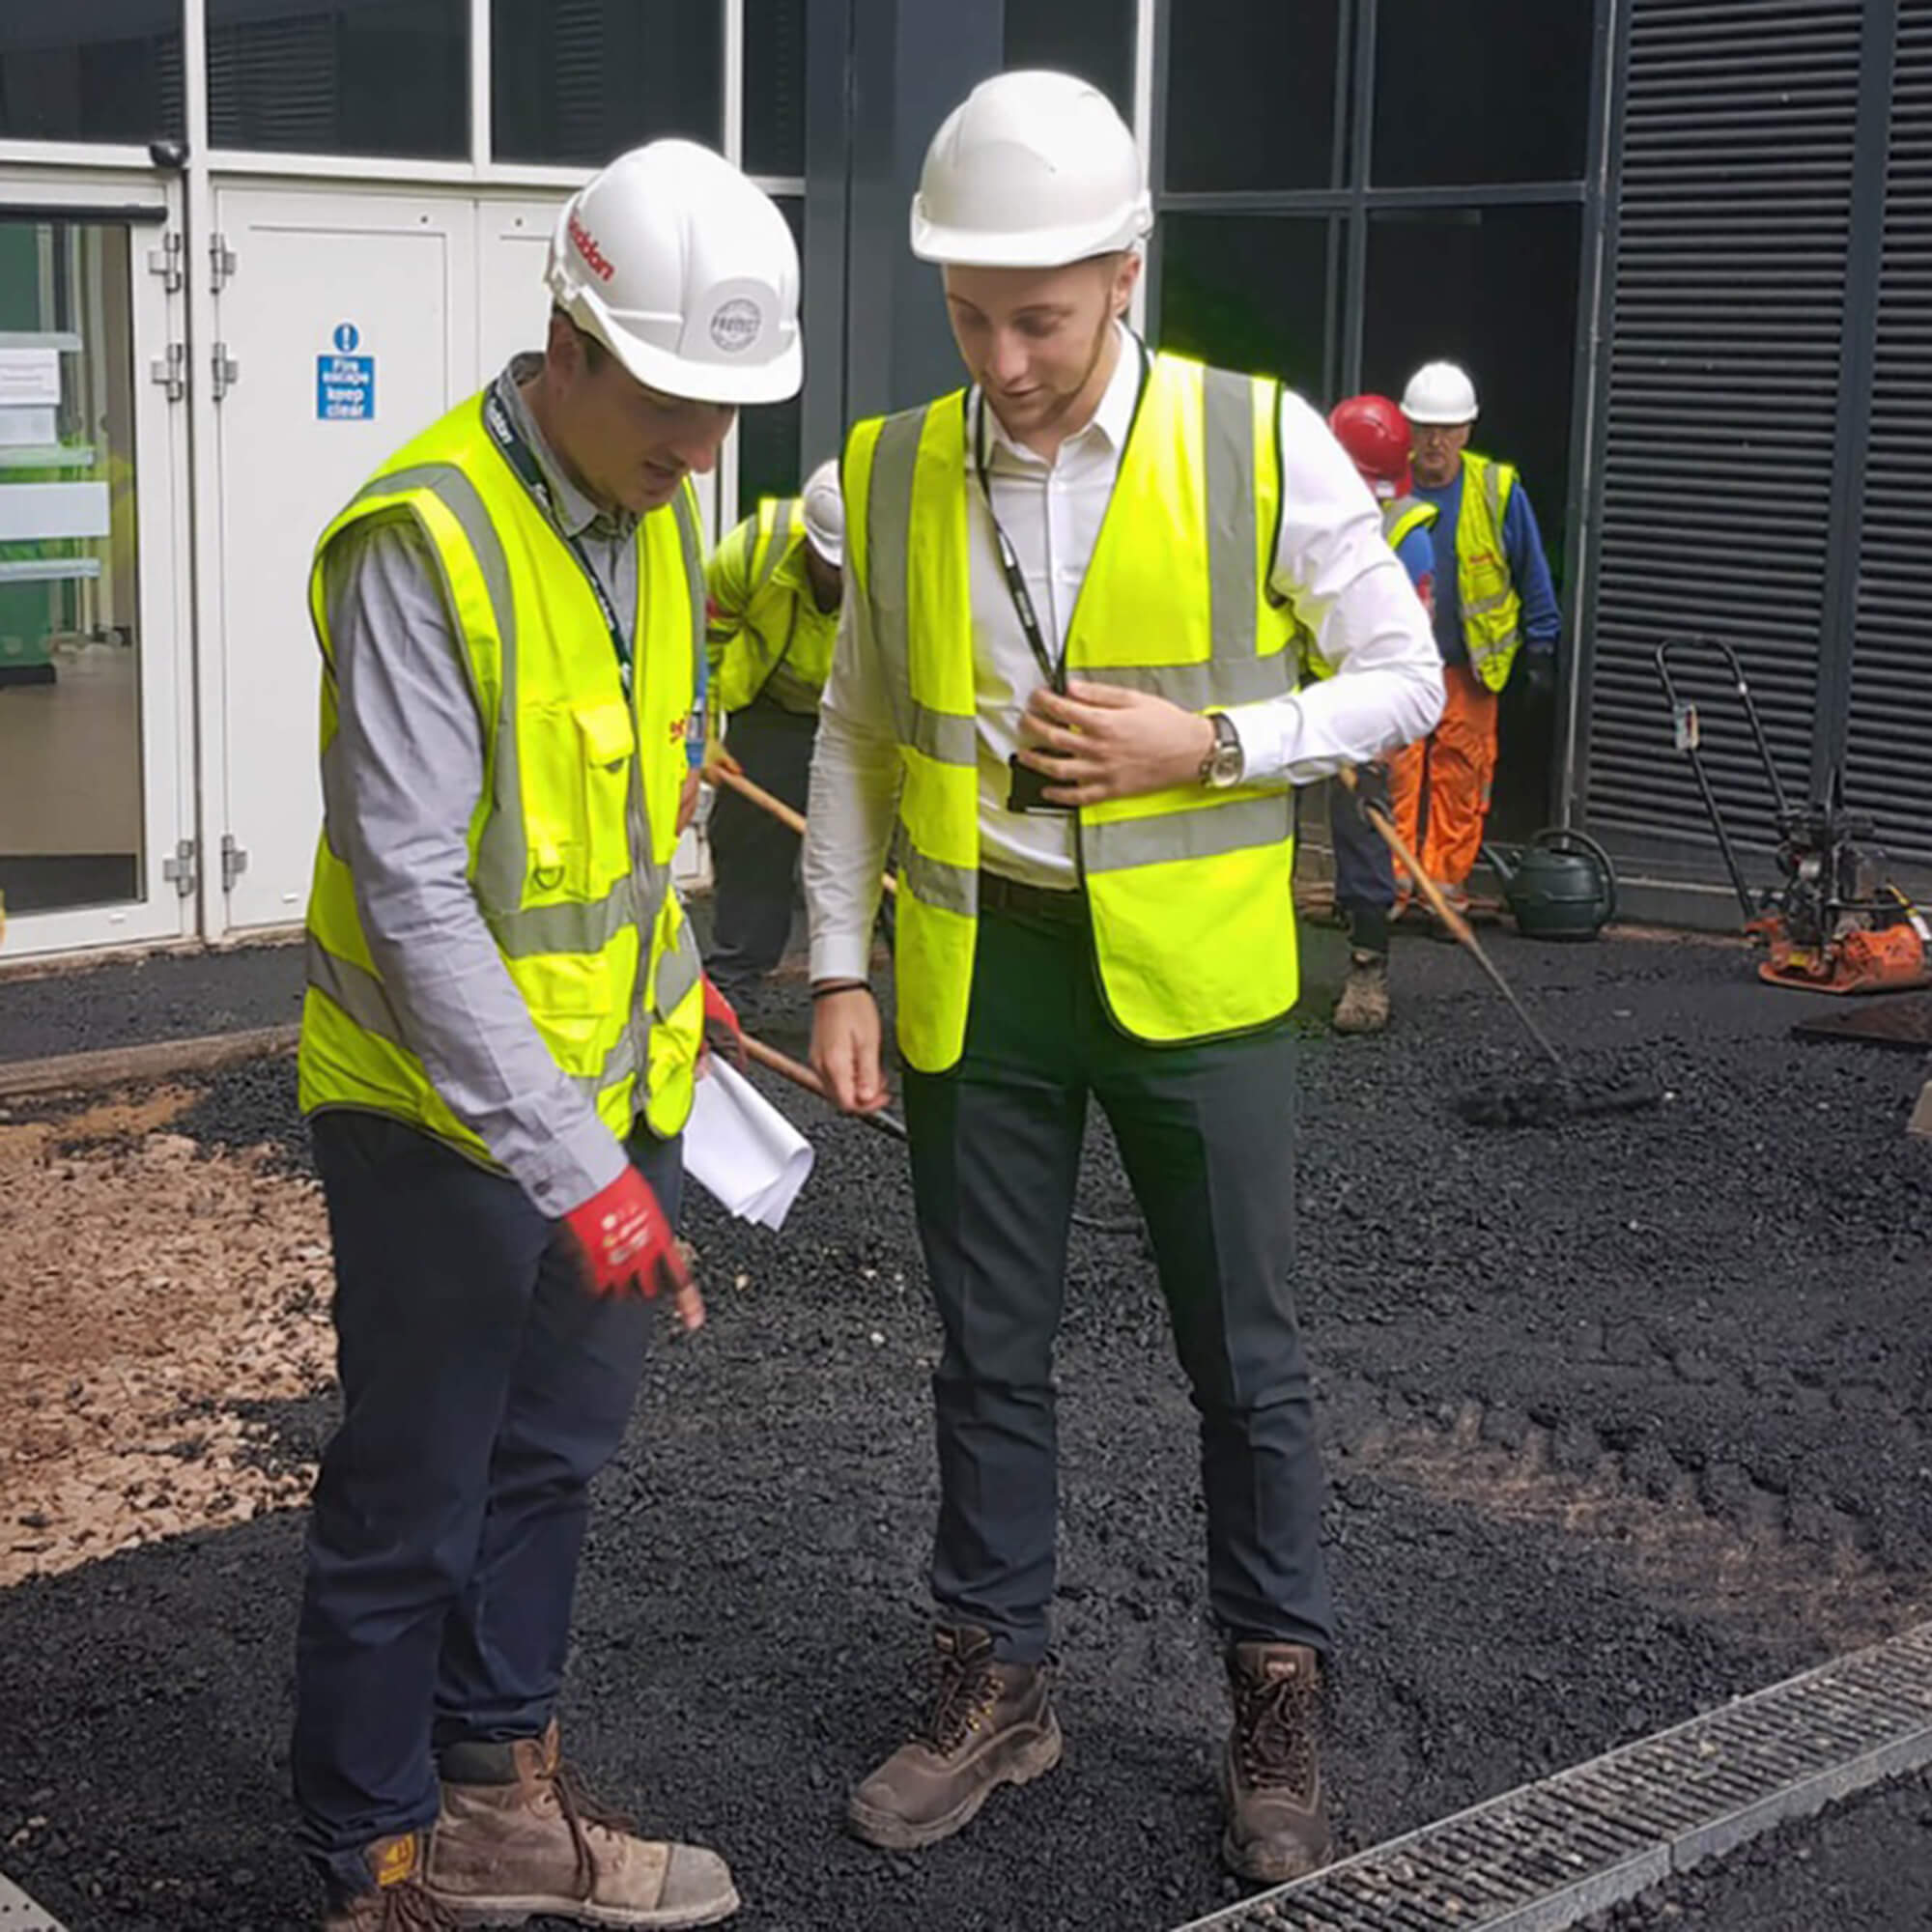 Male student working on site and being advised by another male employer